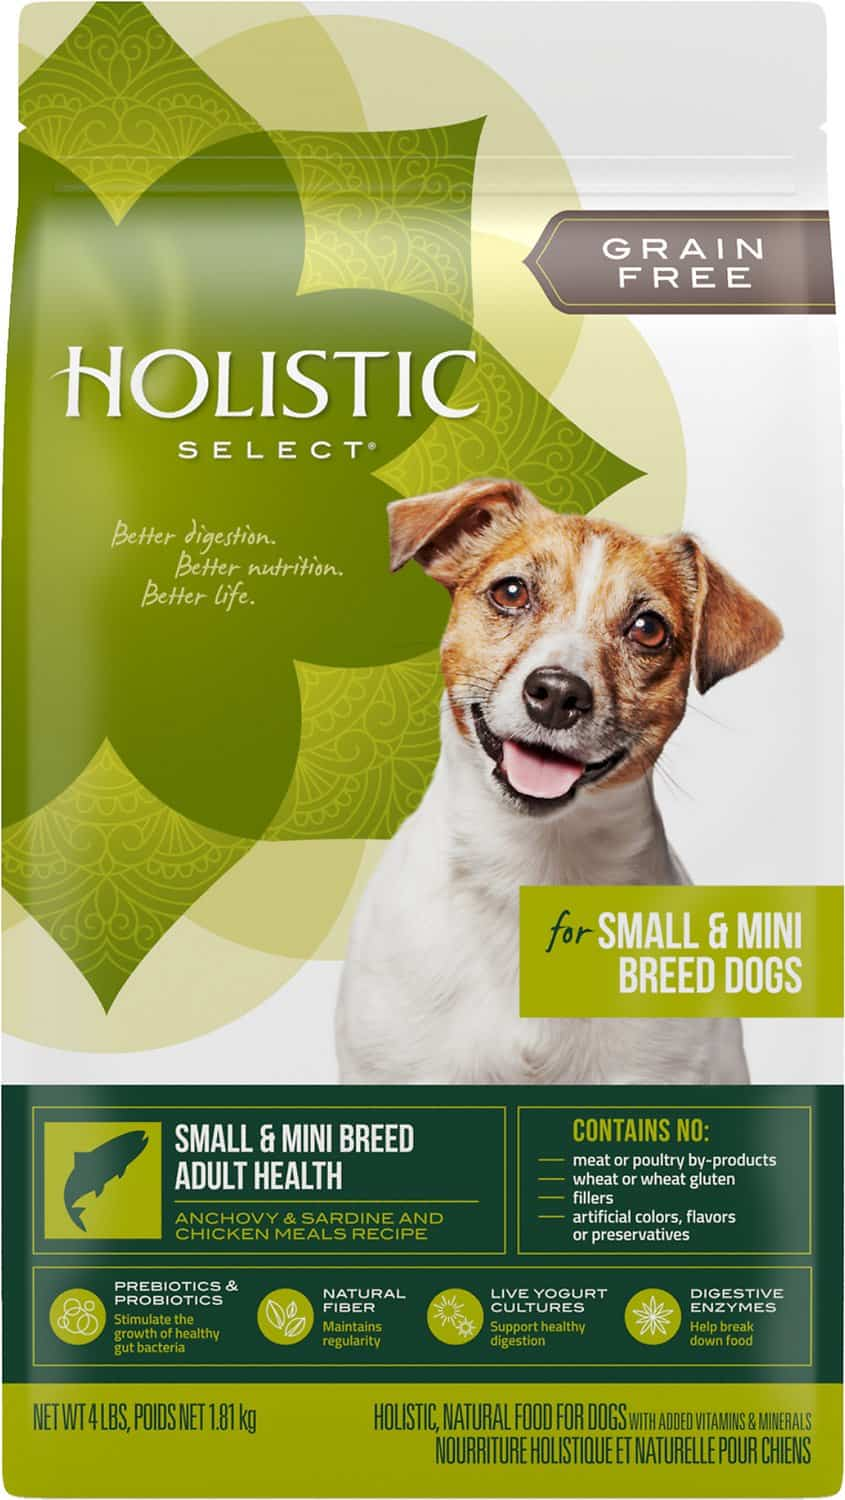 Holistic Select Reviews 2021: Best Holistic Pet Food? 14